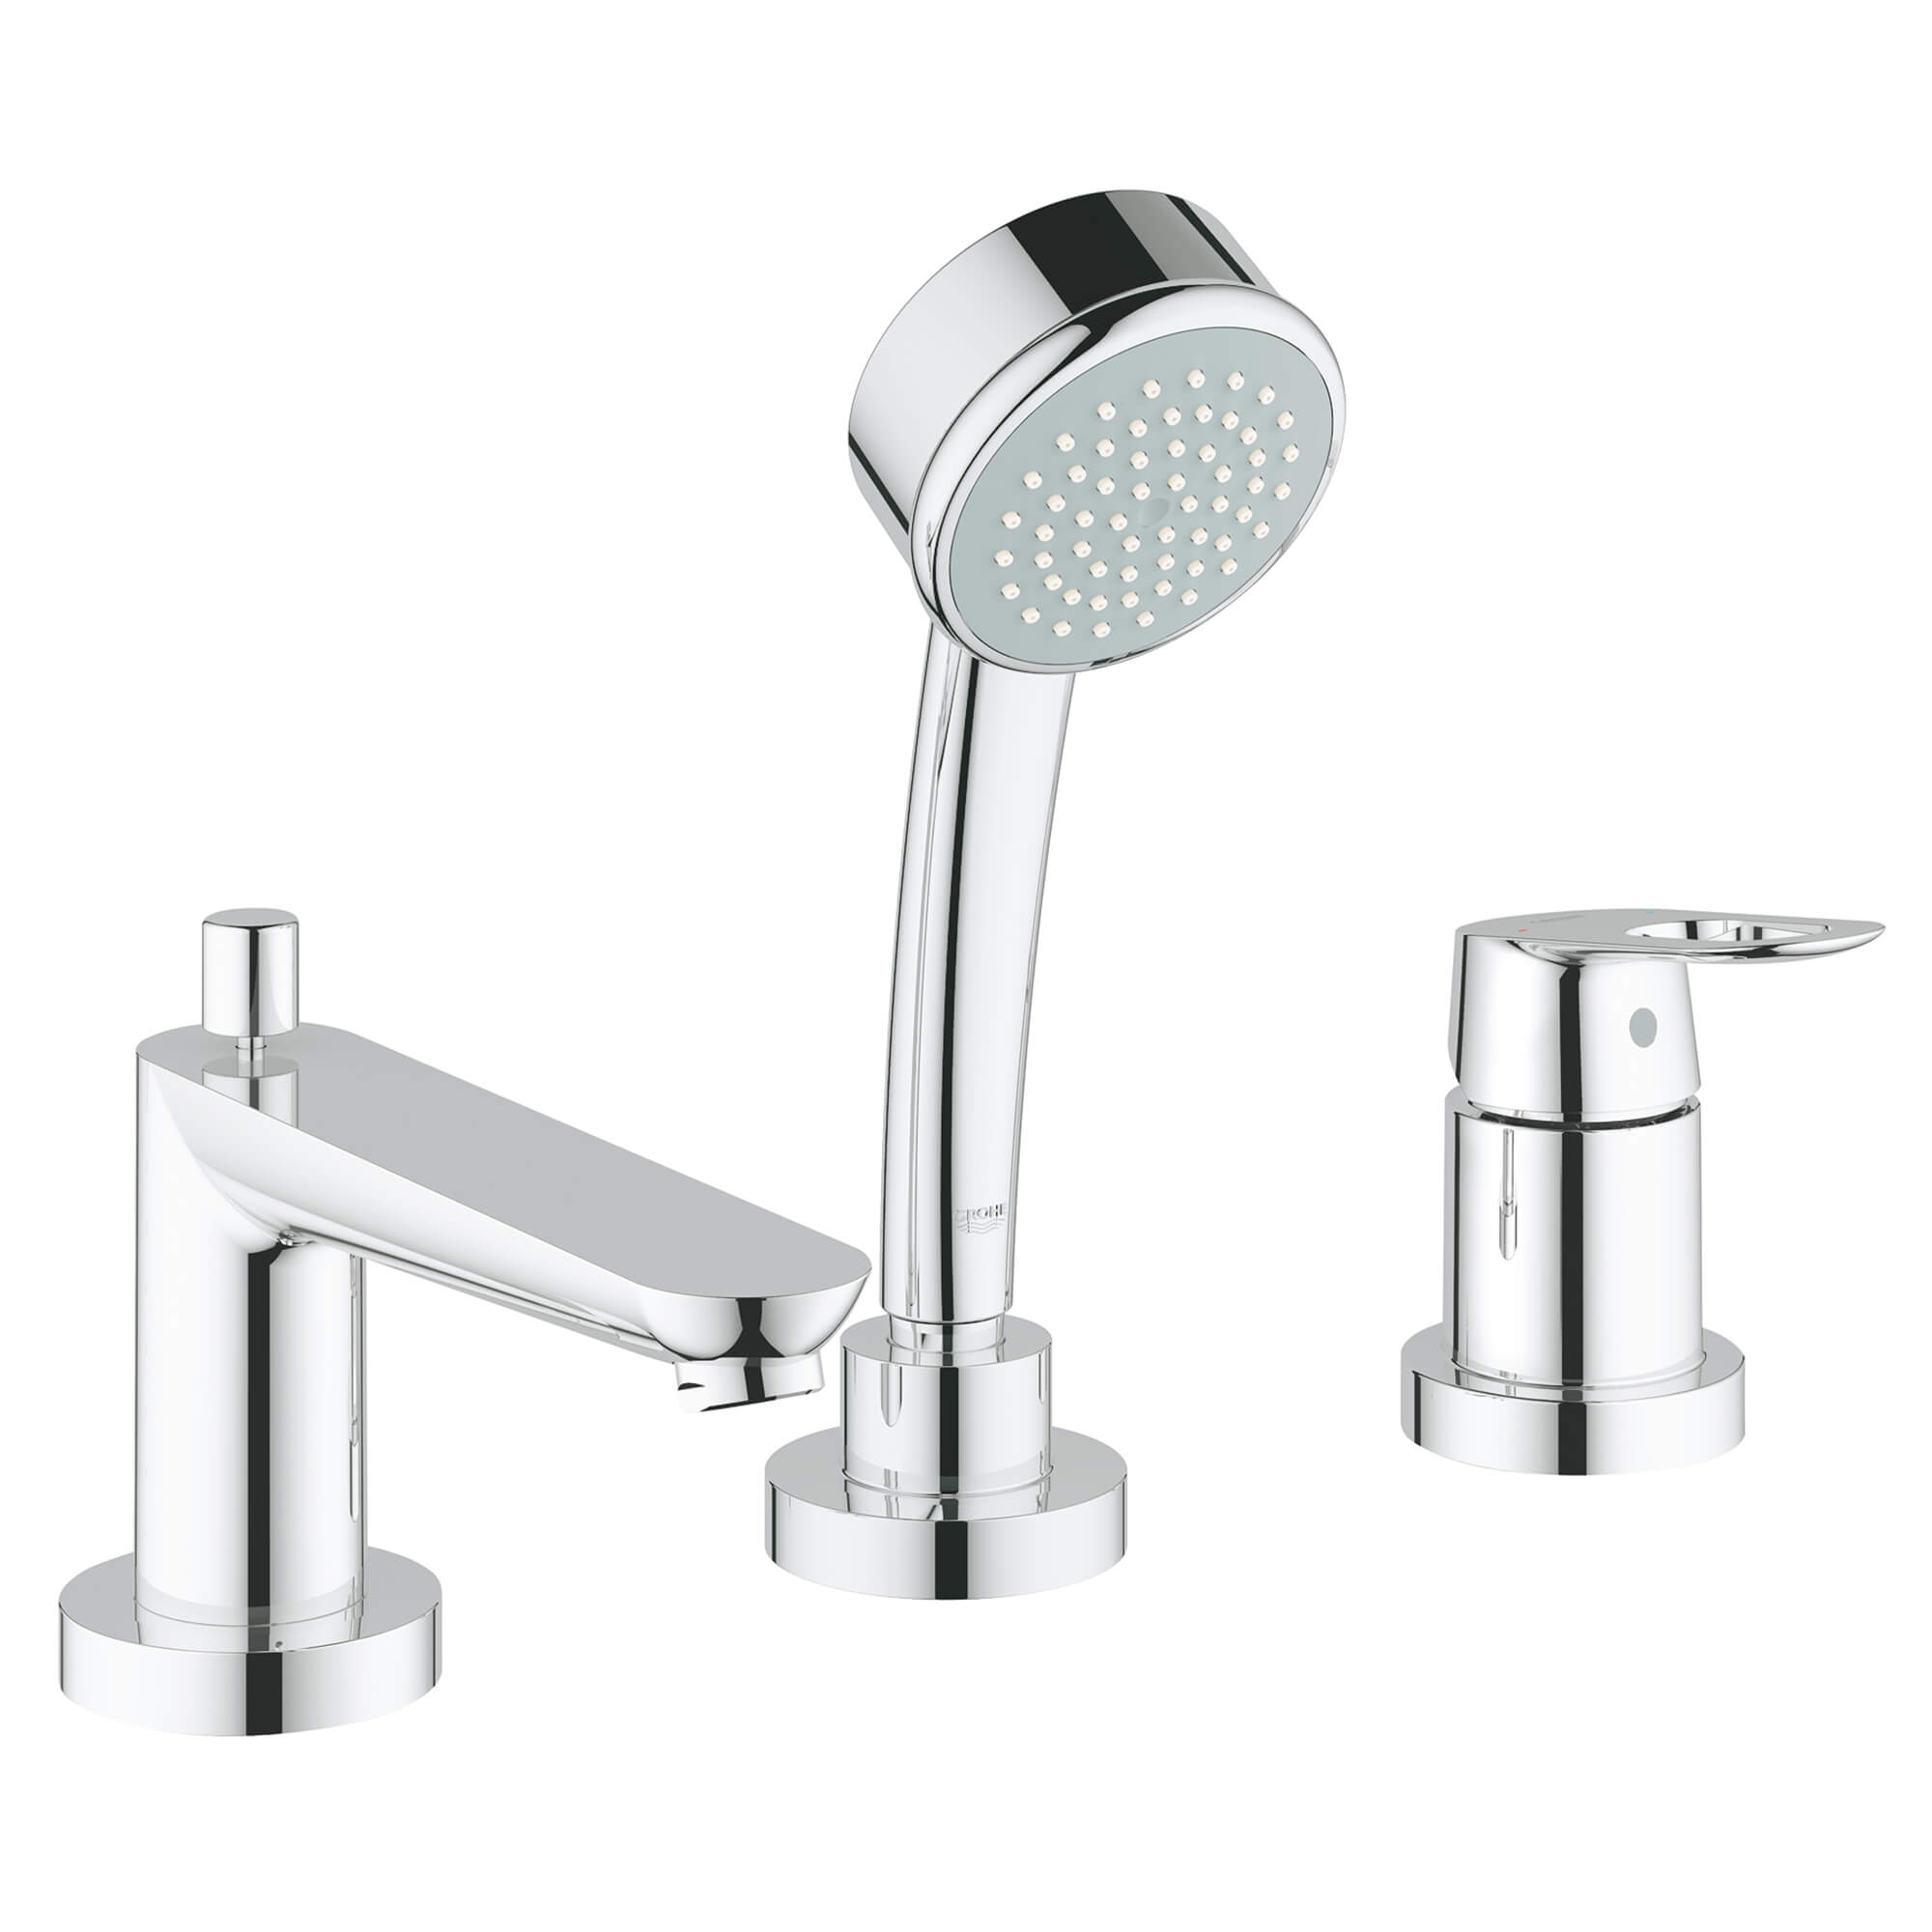 3 hole single handle deck mount roman tub faucet with 2 0 gpm hand shower